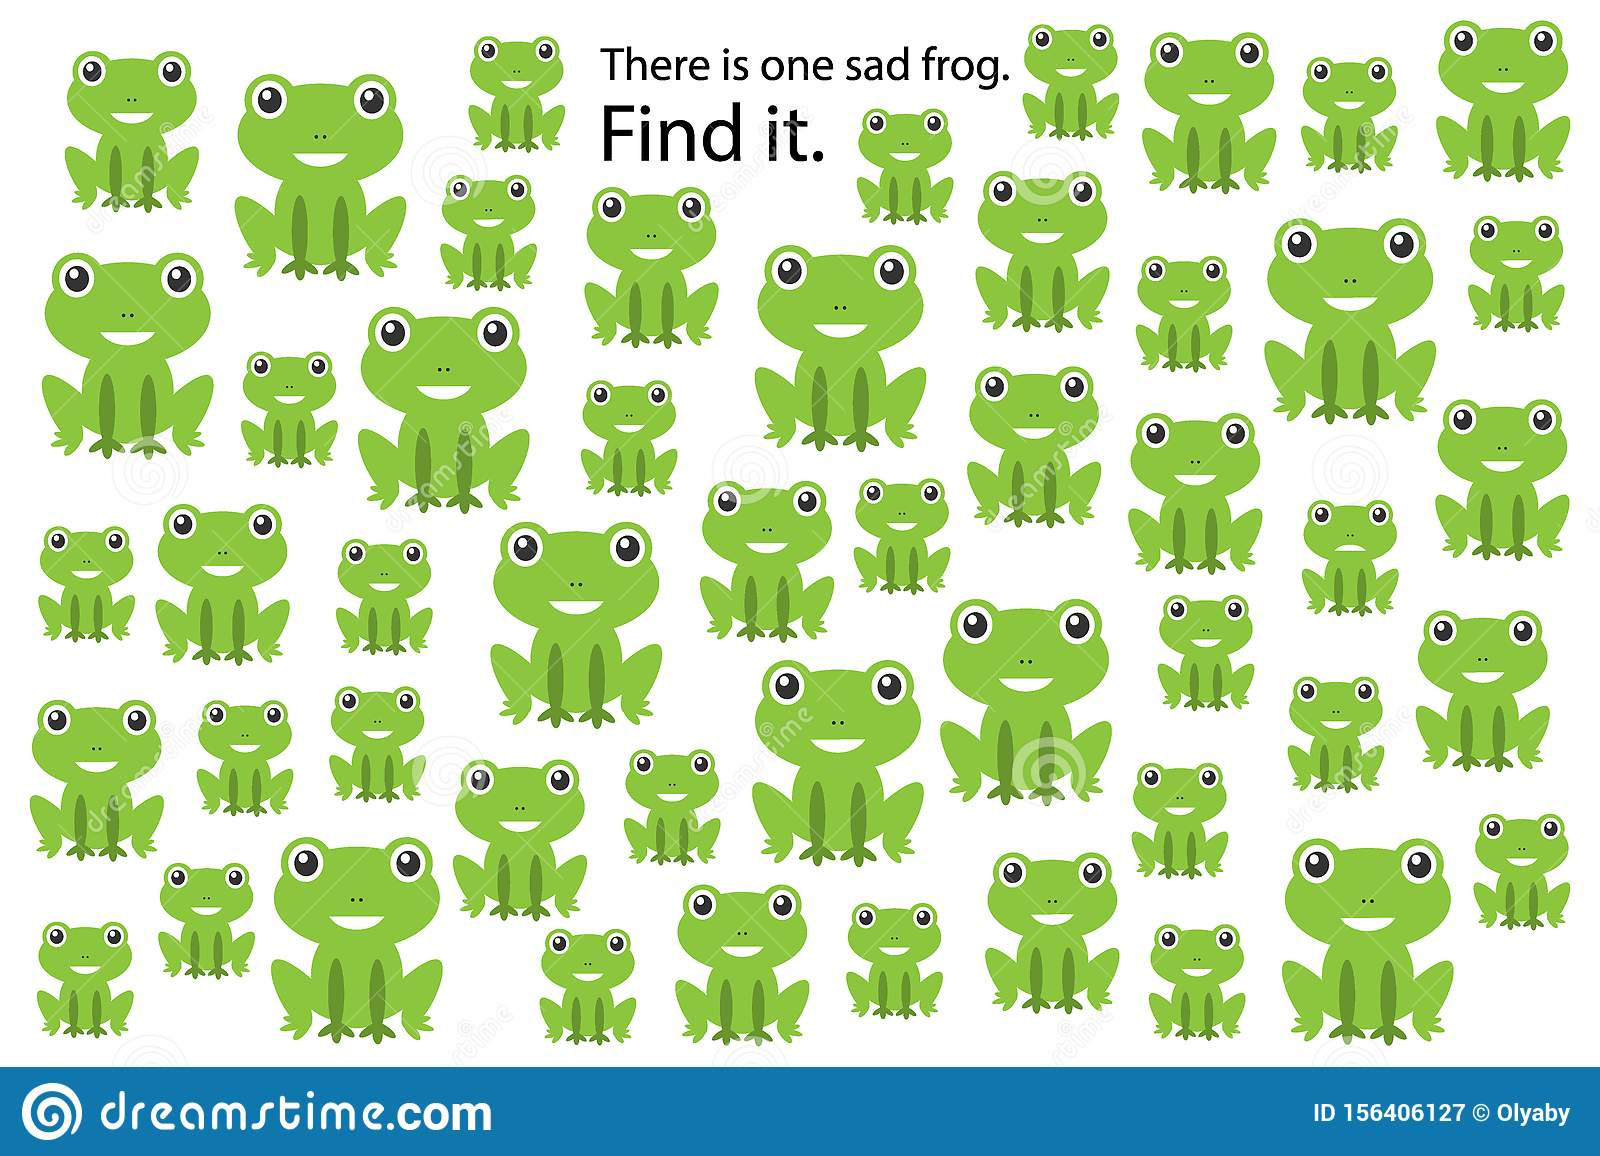 Find Sad Frog Education Puzzle Game For Children